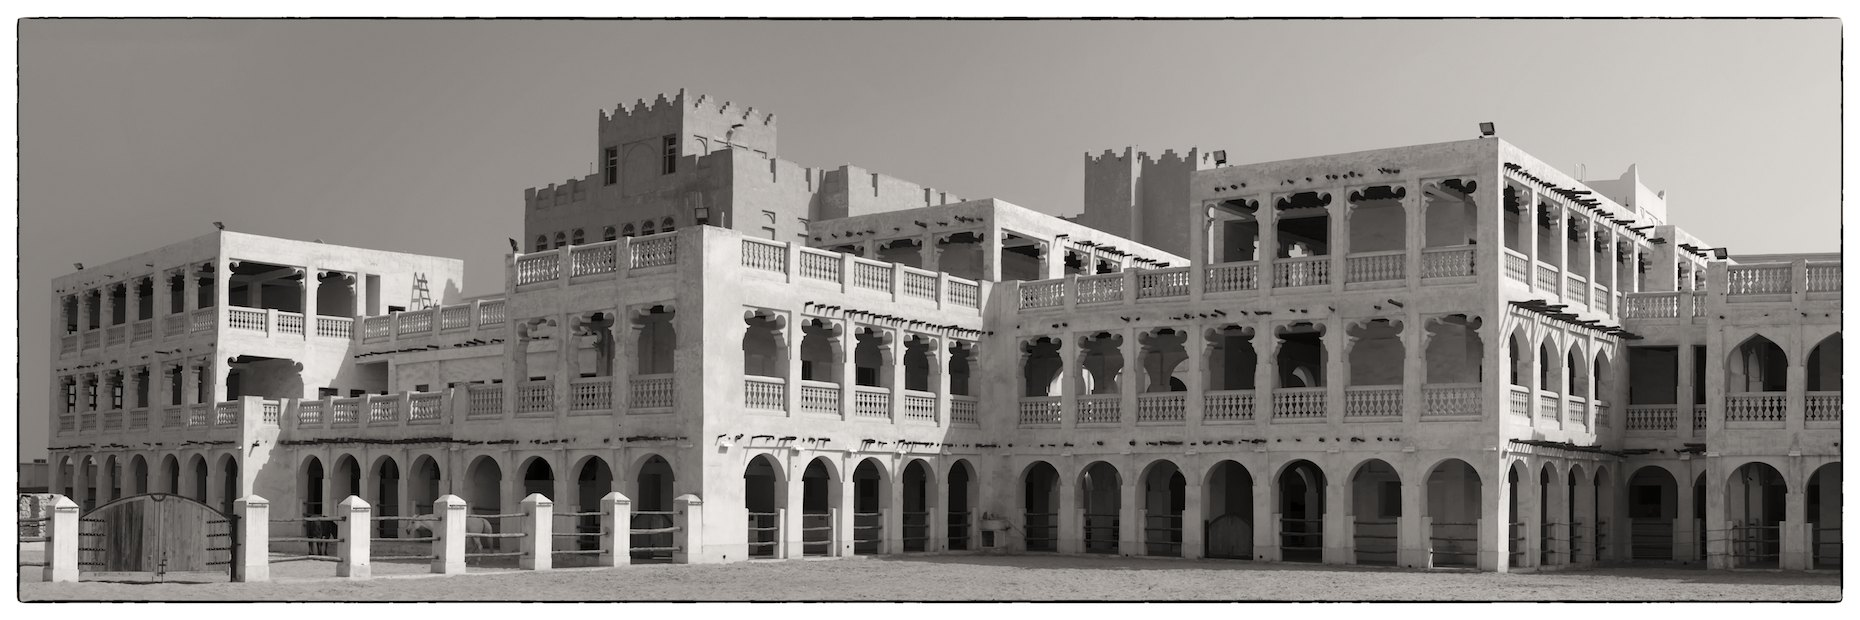 Souq Waqif, horse stables, panorama